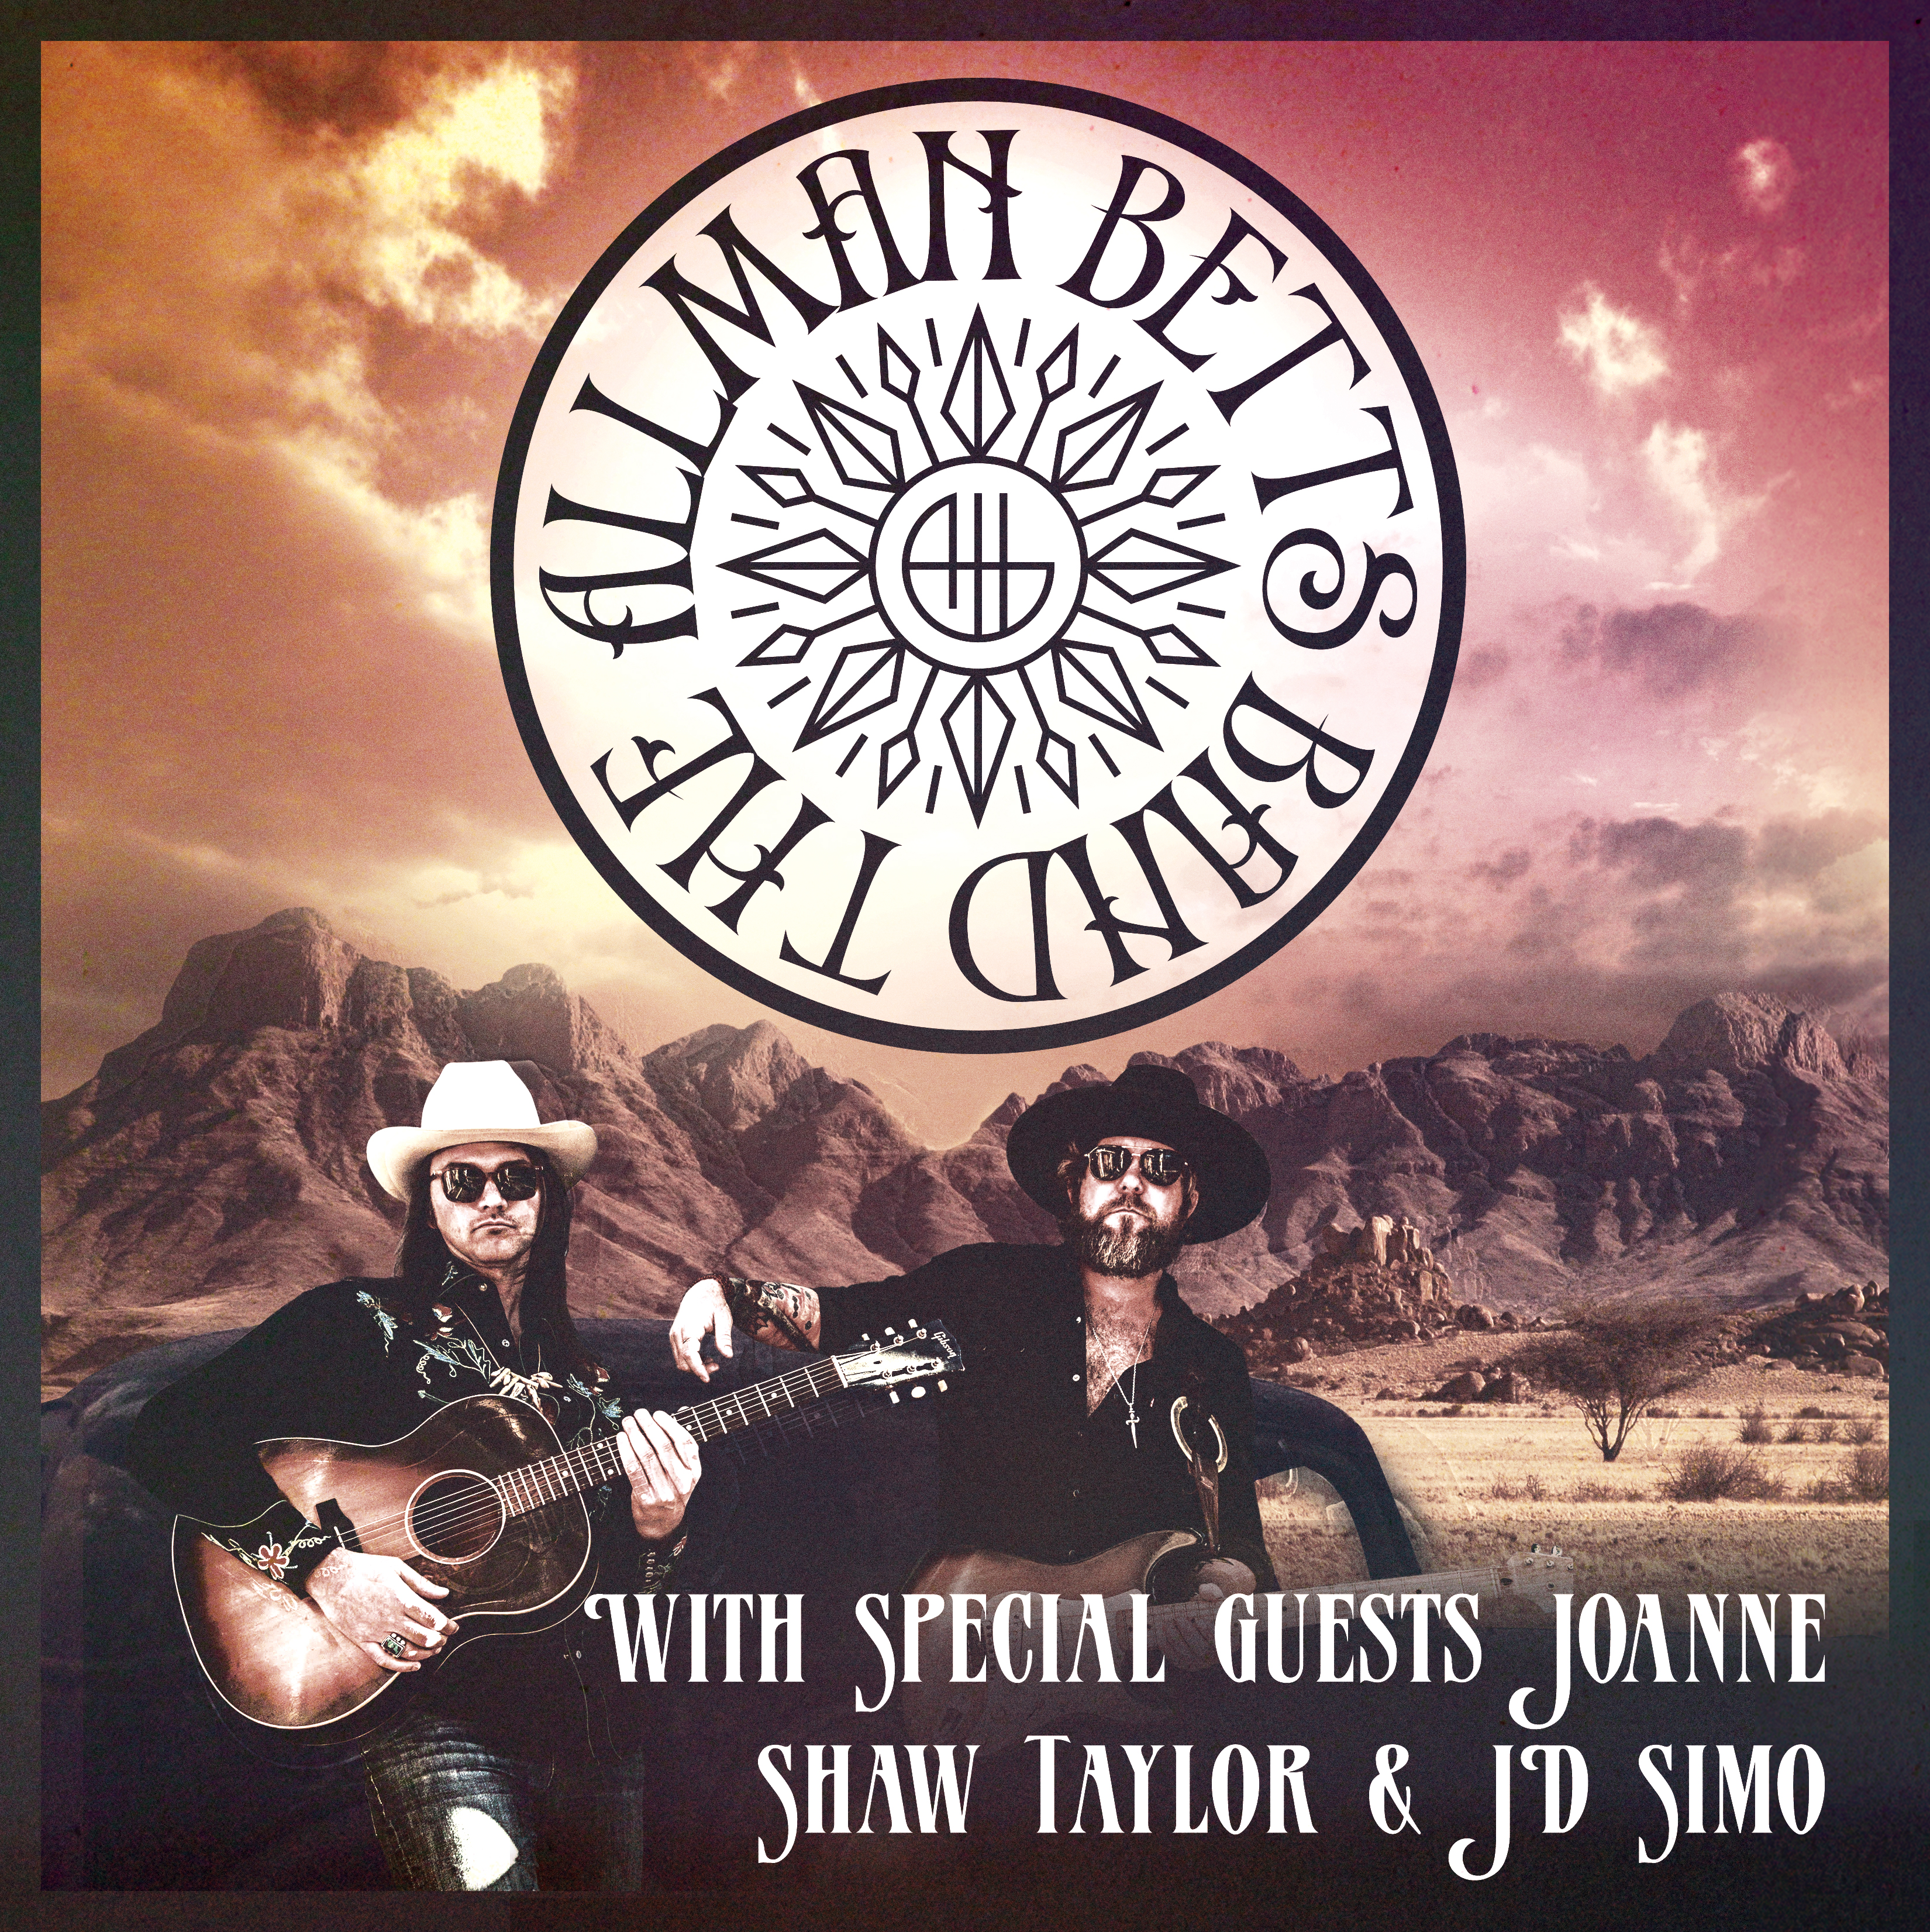 The Allman Betts Band With Special Guest Joanne Shaw Taylor & JD Simo